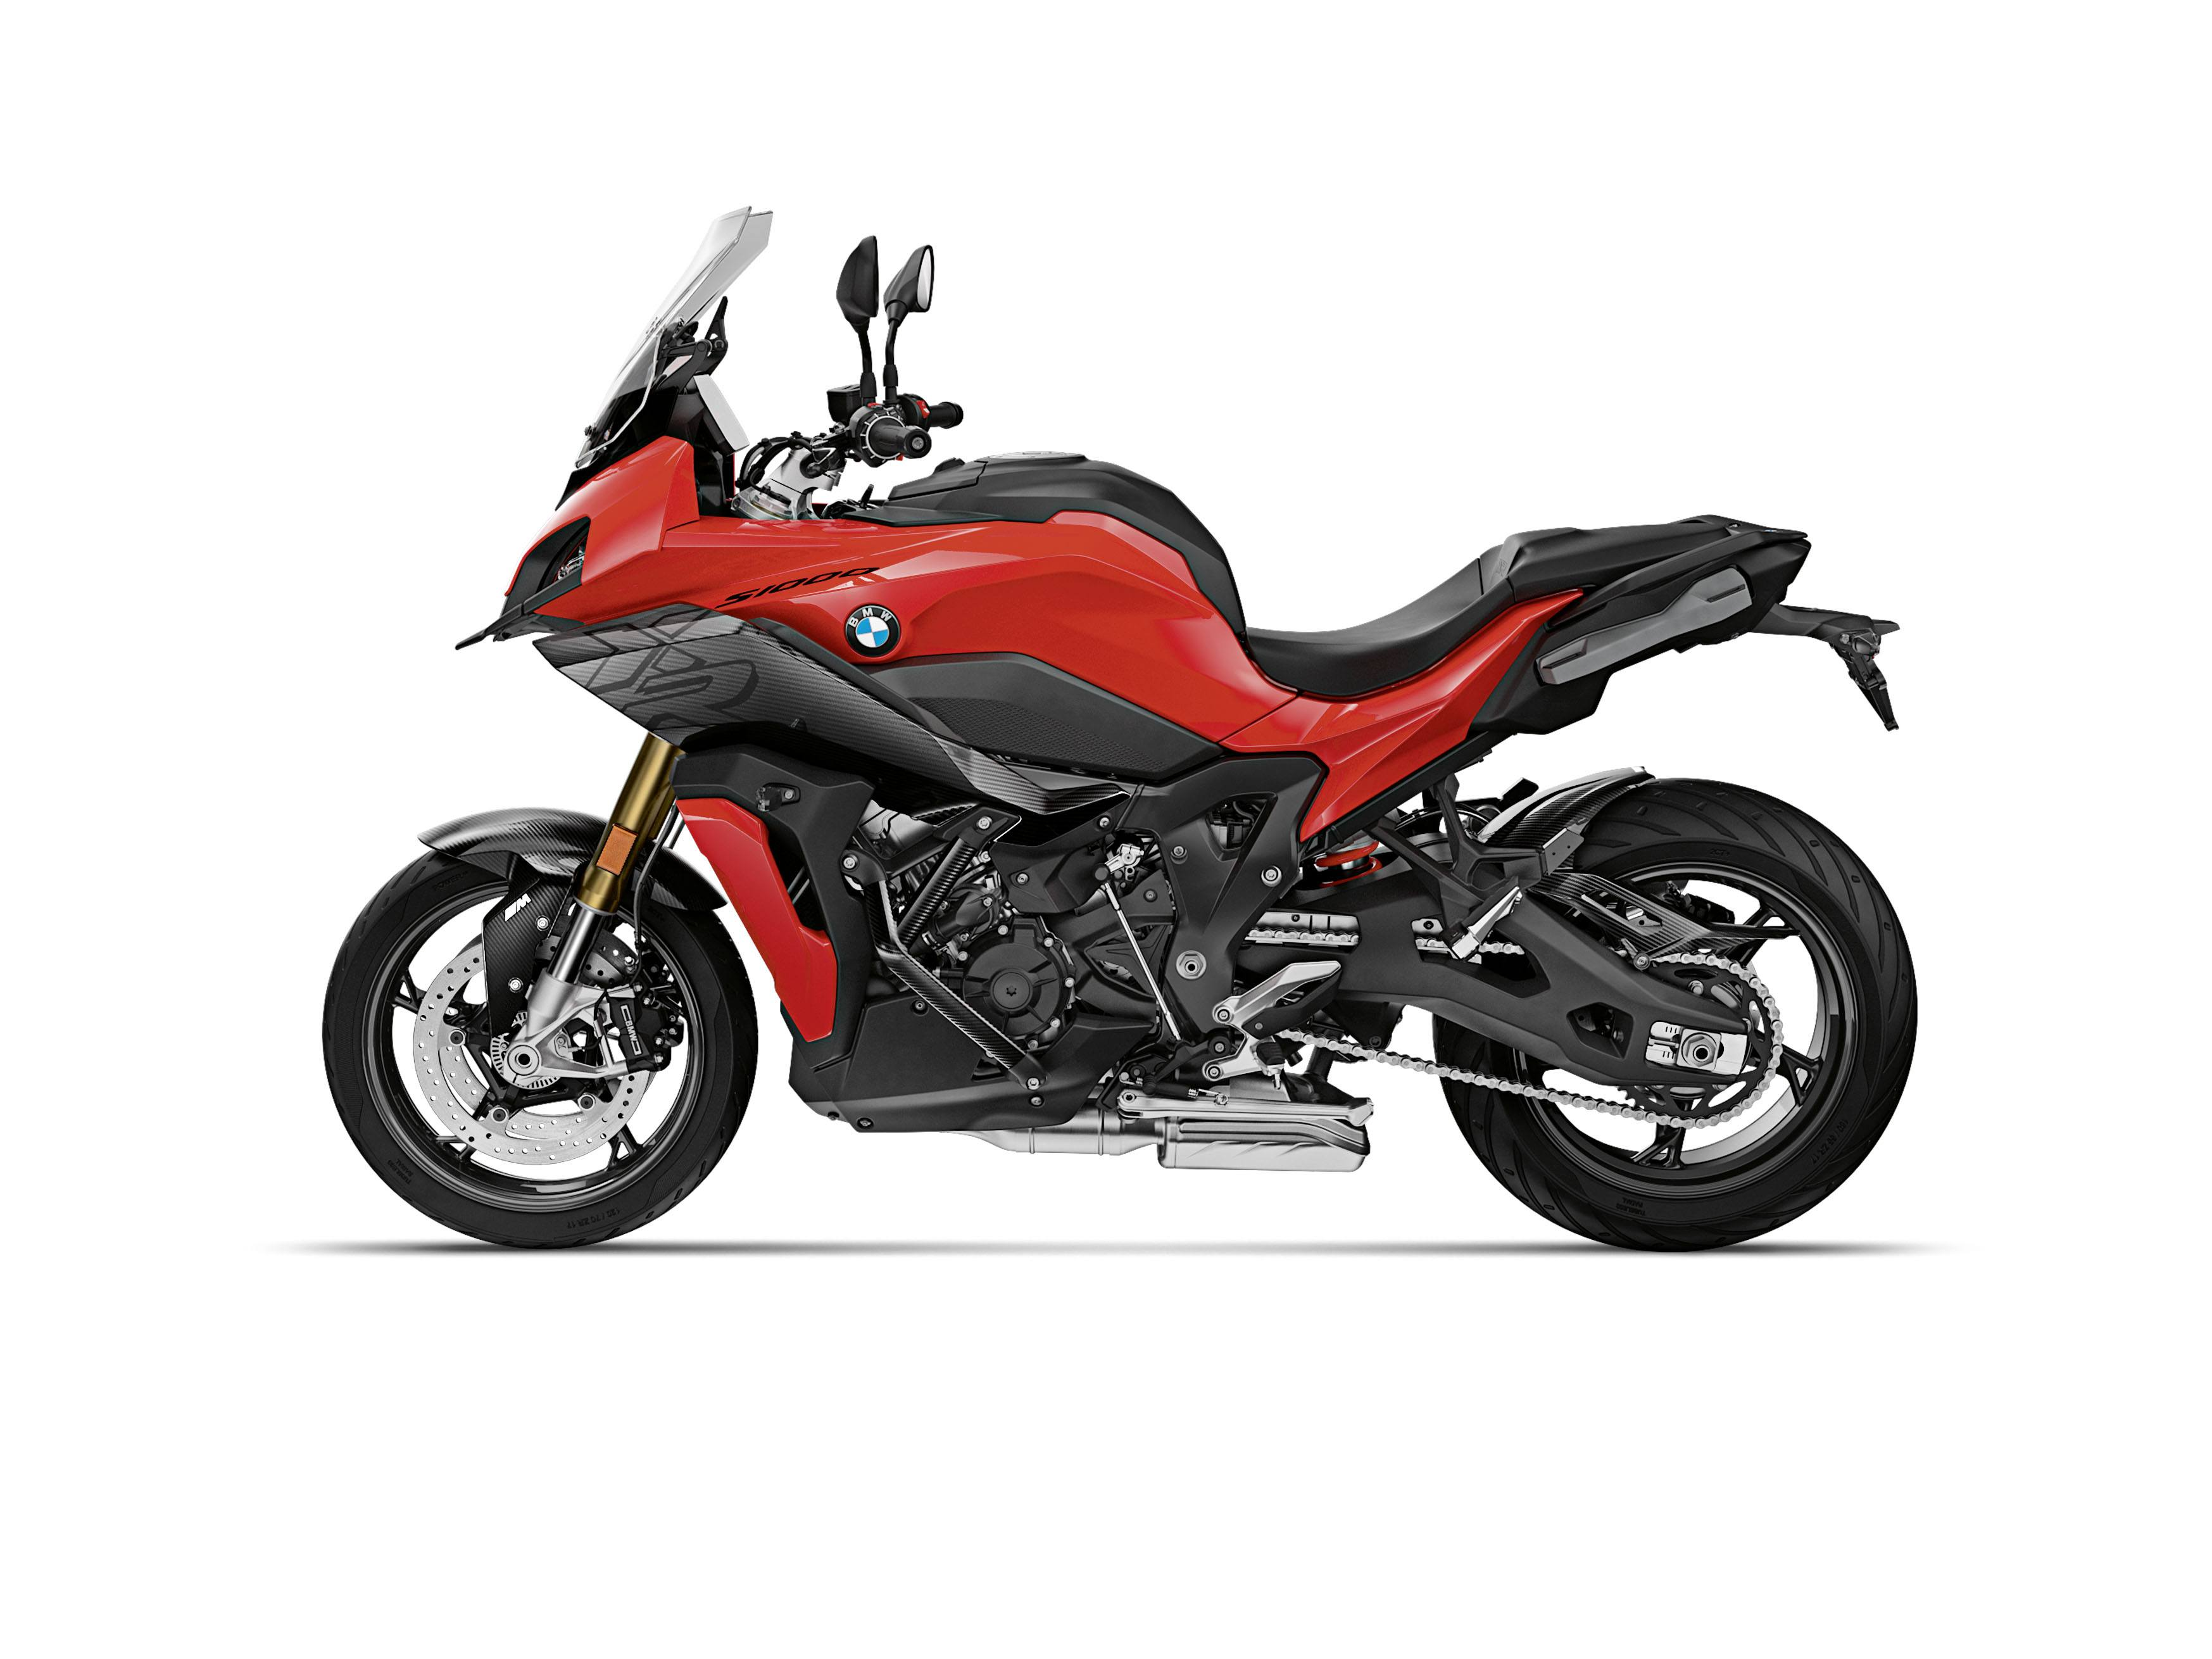 2020 BMW S1000XR First Look - Motorcycle.com